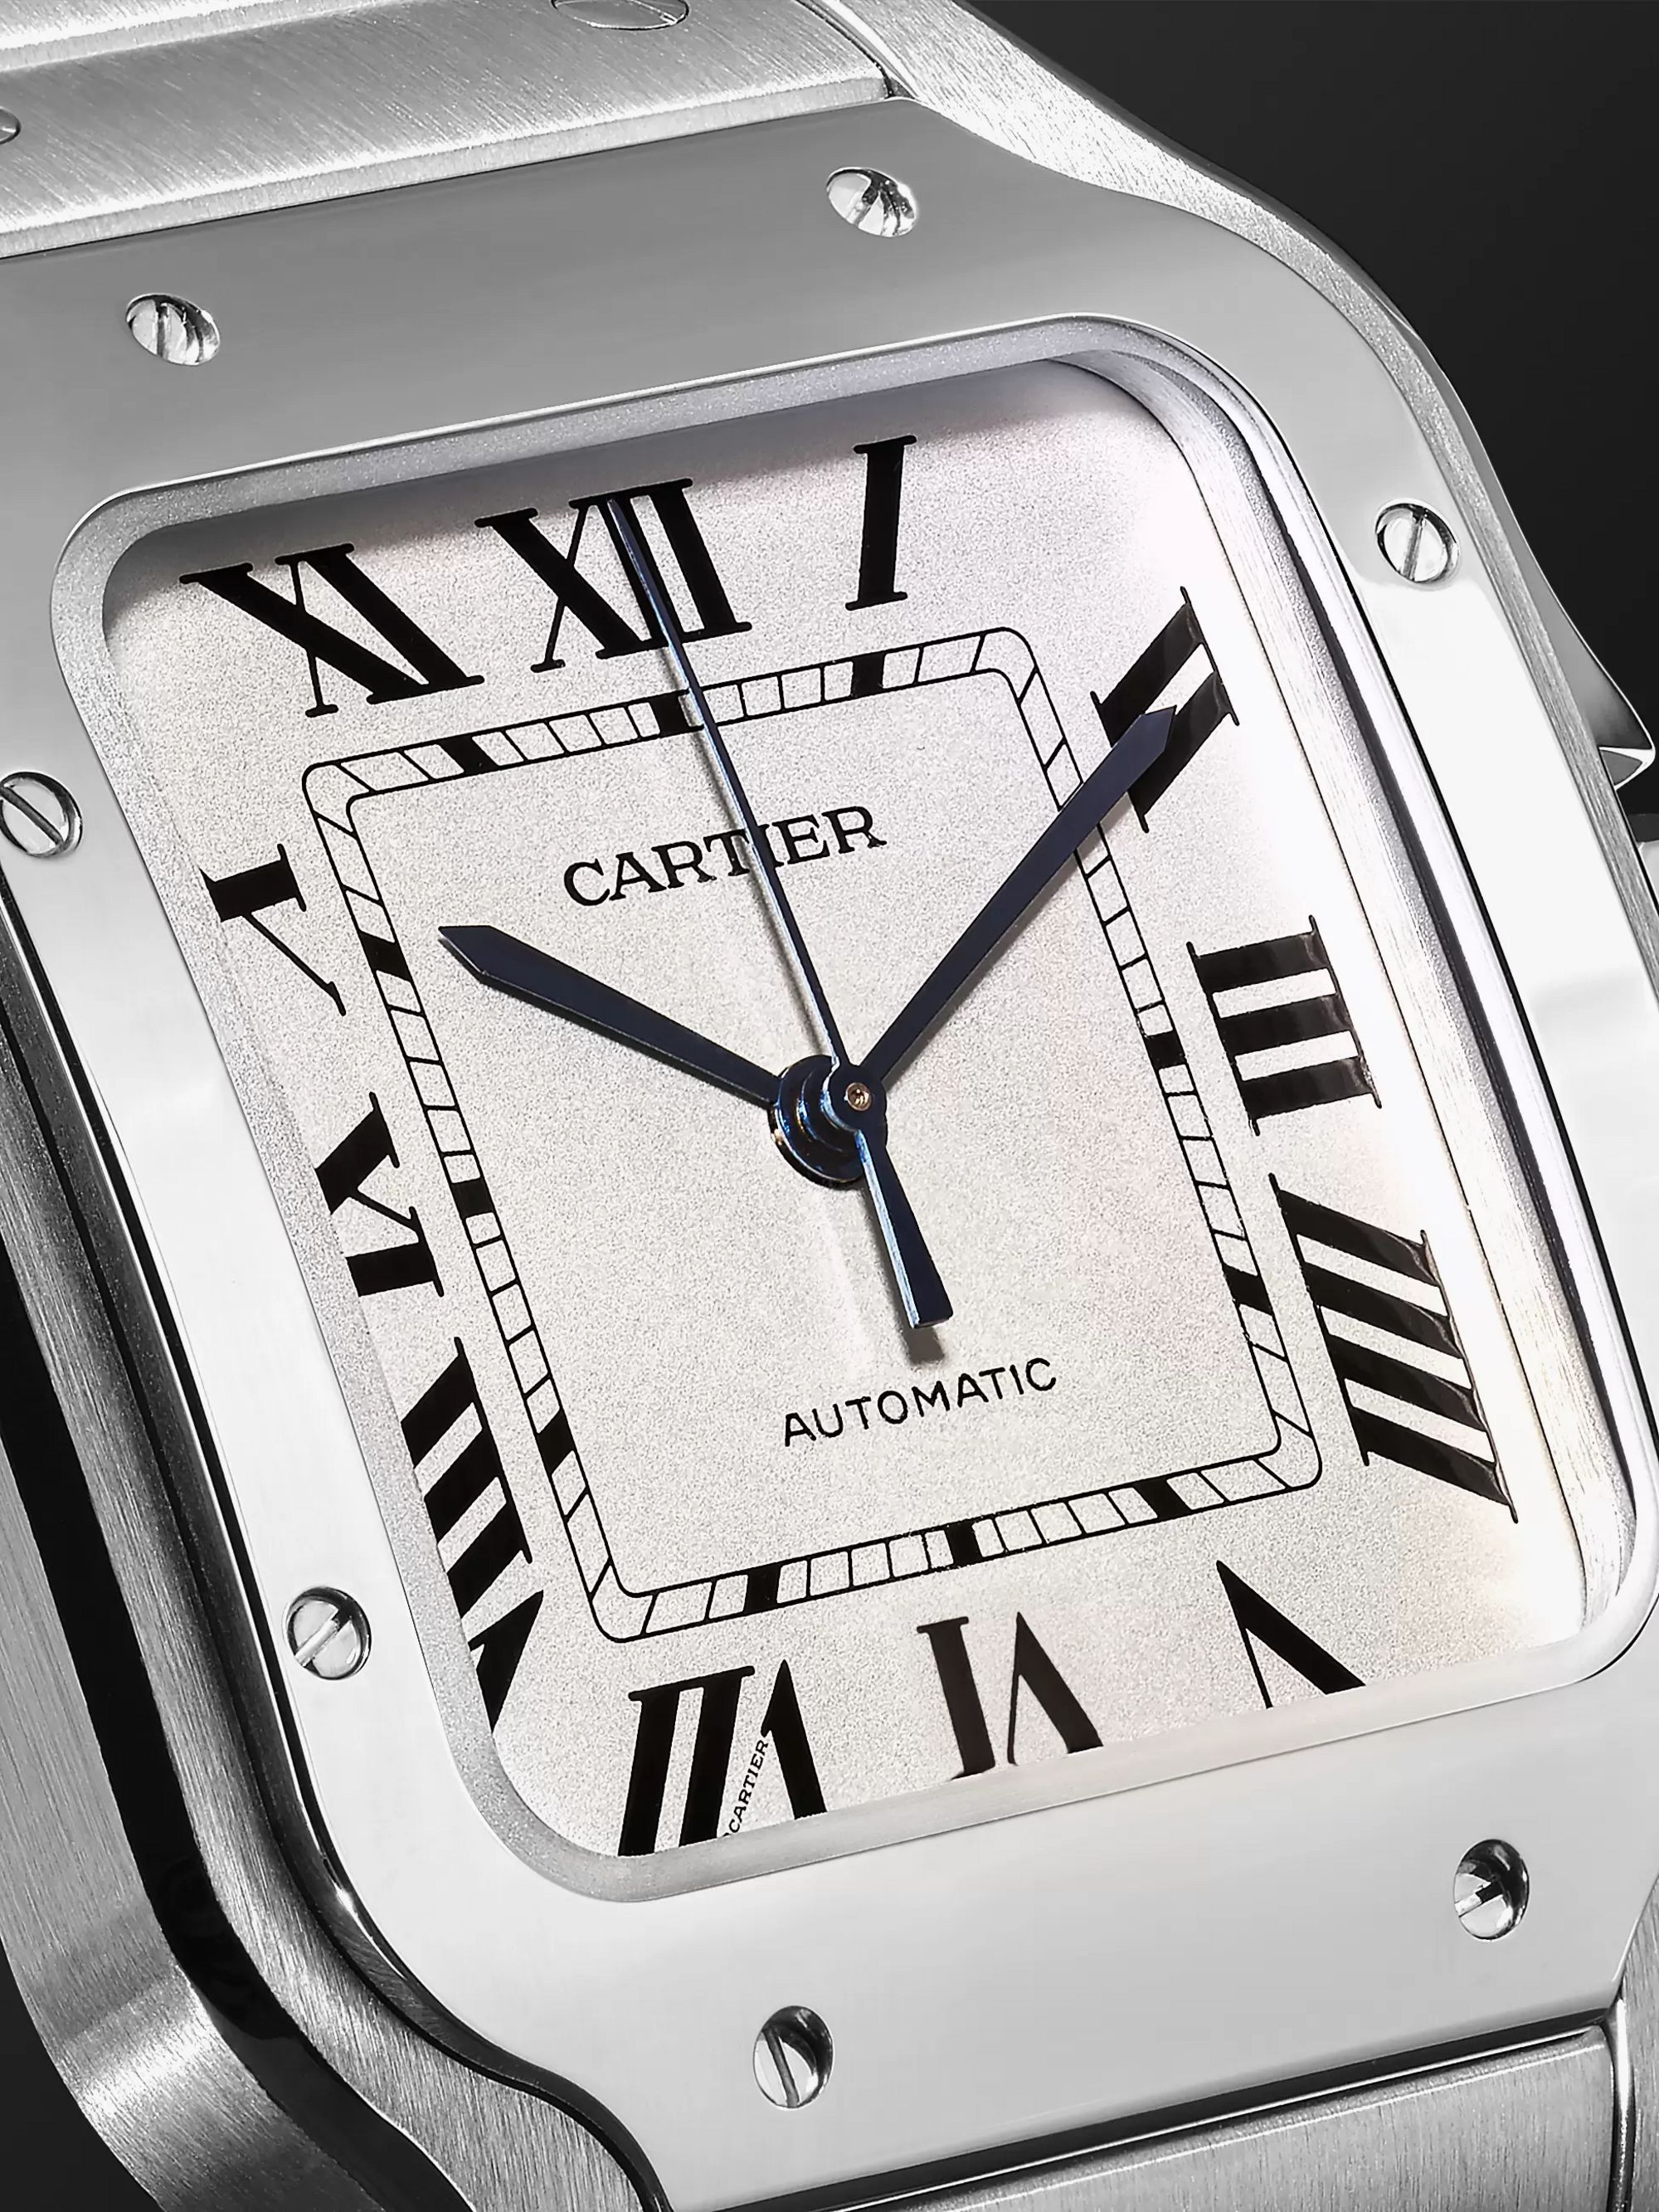 Cartier Santos Automatic 35.6mm Interchangeable Stainless Steel and Leather Watch, Ref. No. WSSA0010P